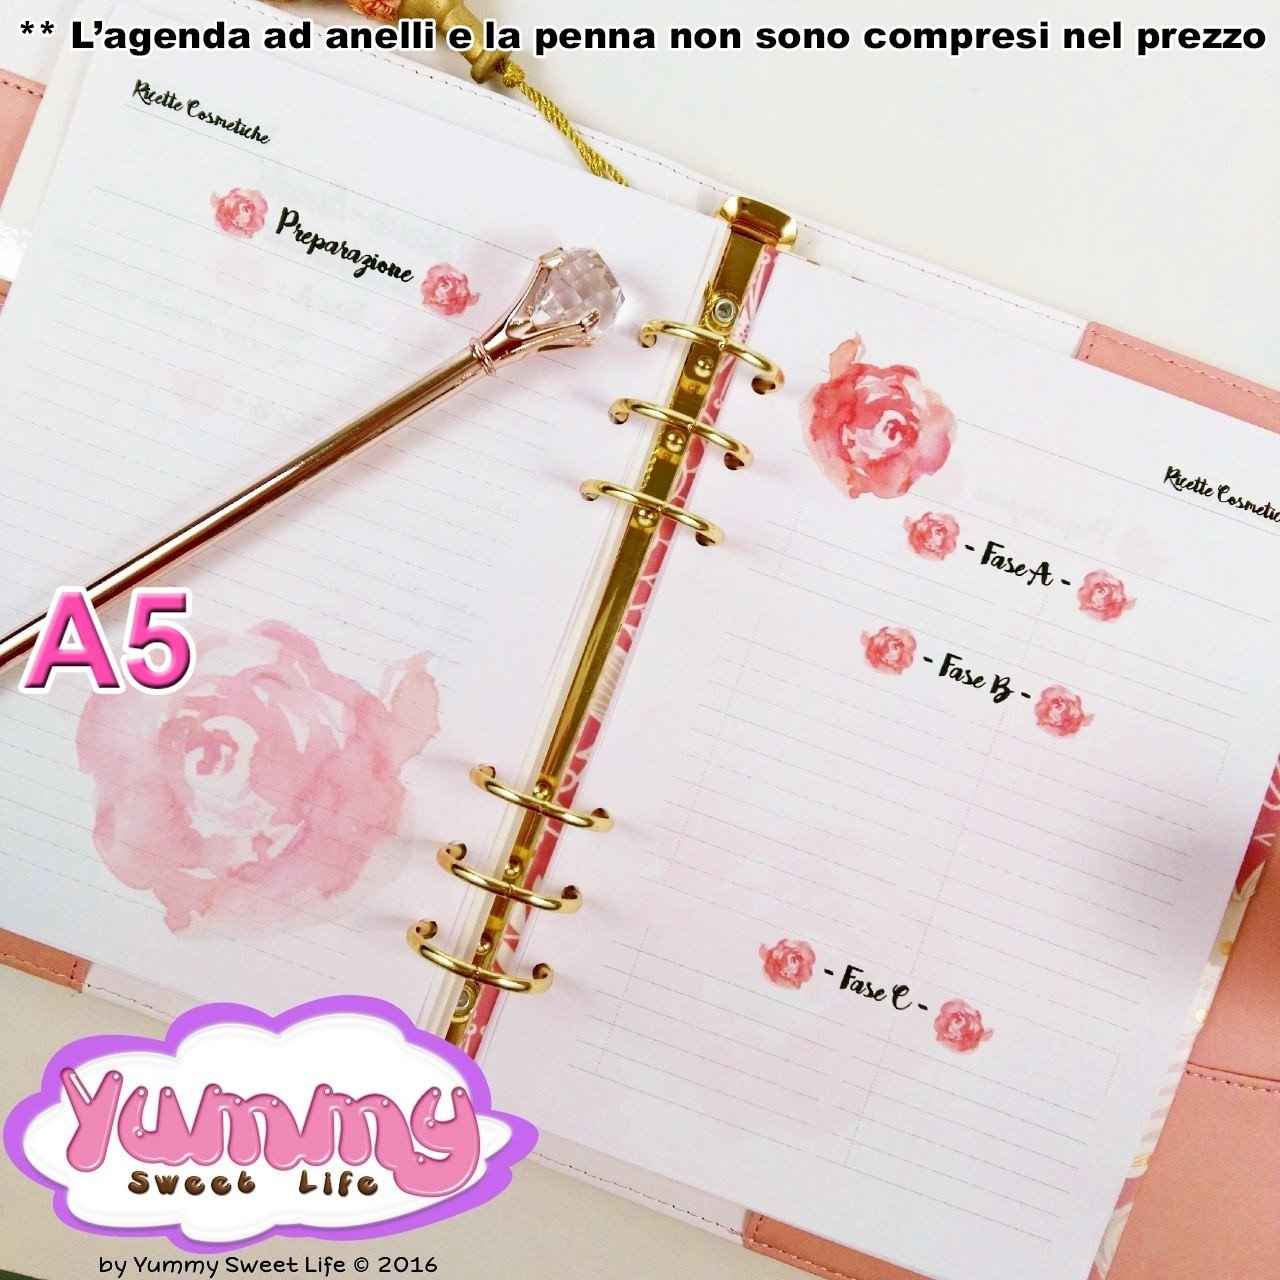 A5 Watercolor Roses Homemade Cosmetics Recipes Insert